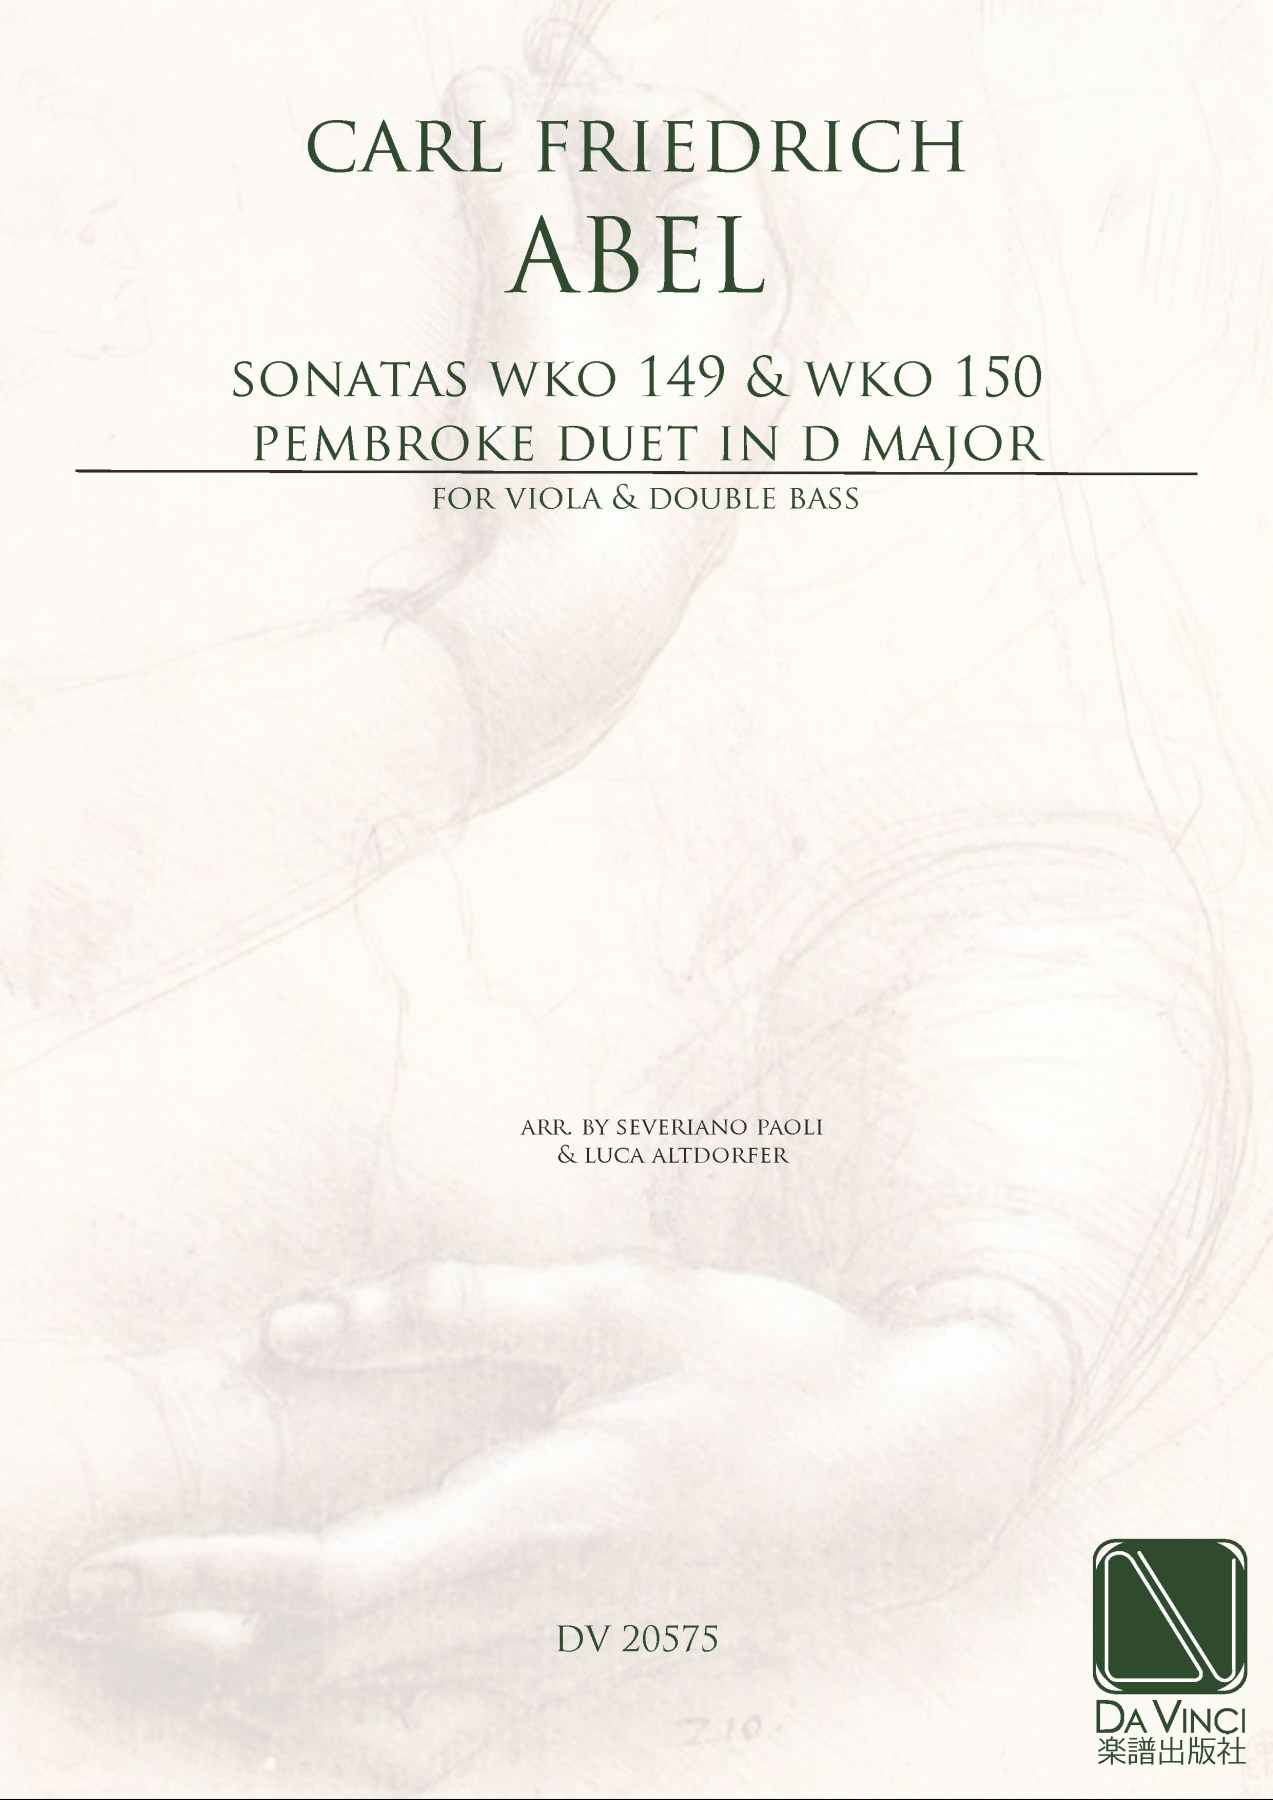 (Arr. By Severiano Paoli & Luca Altdorfer) DV 20576 24 Pages Neoclassic